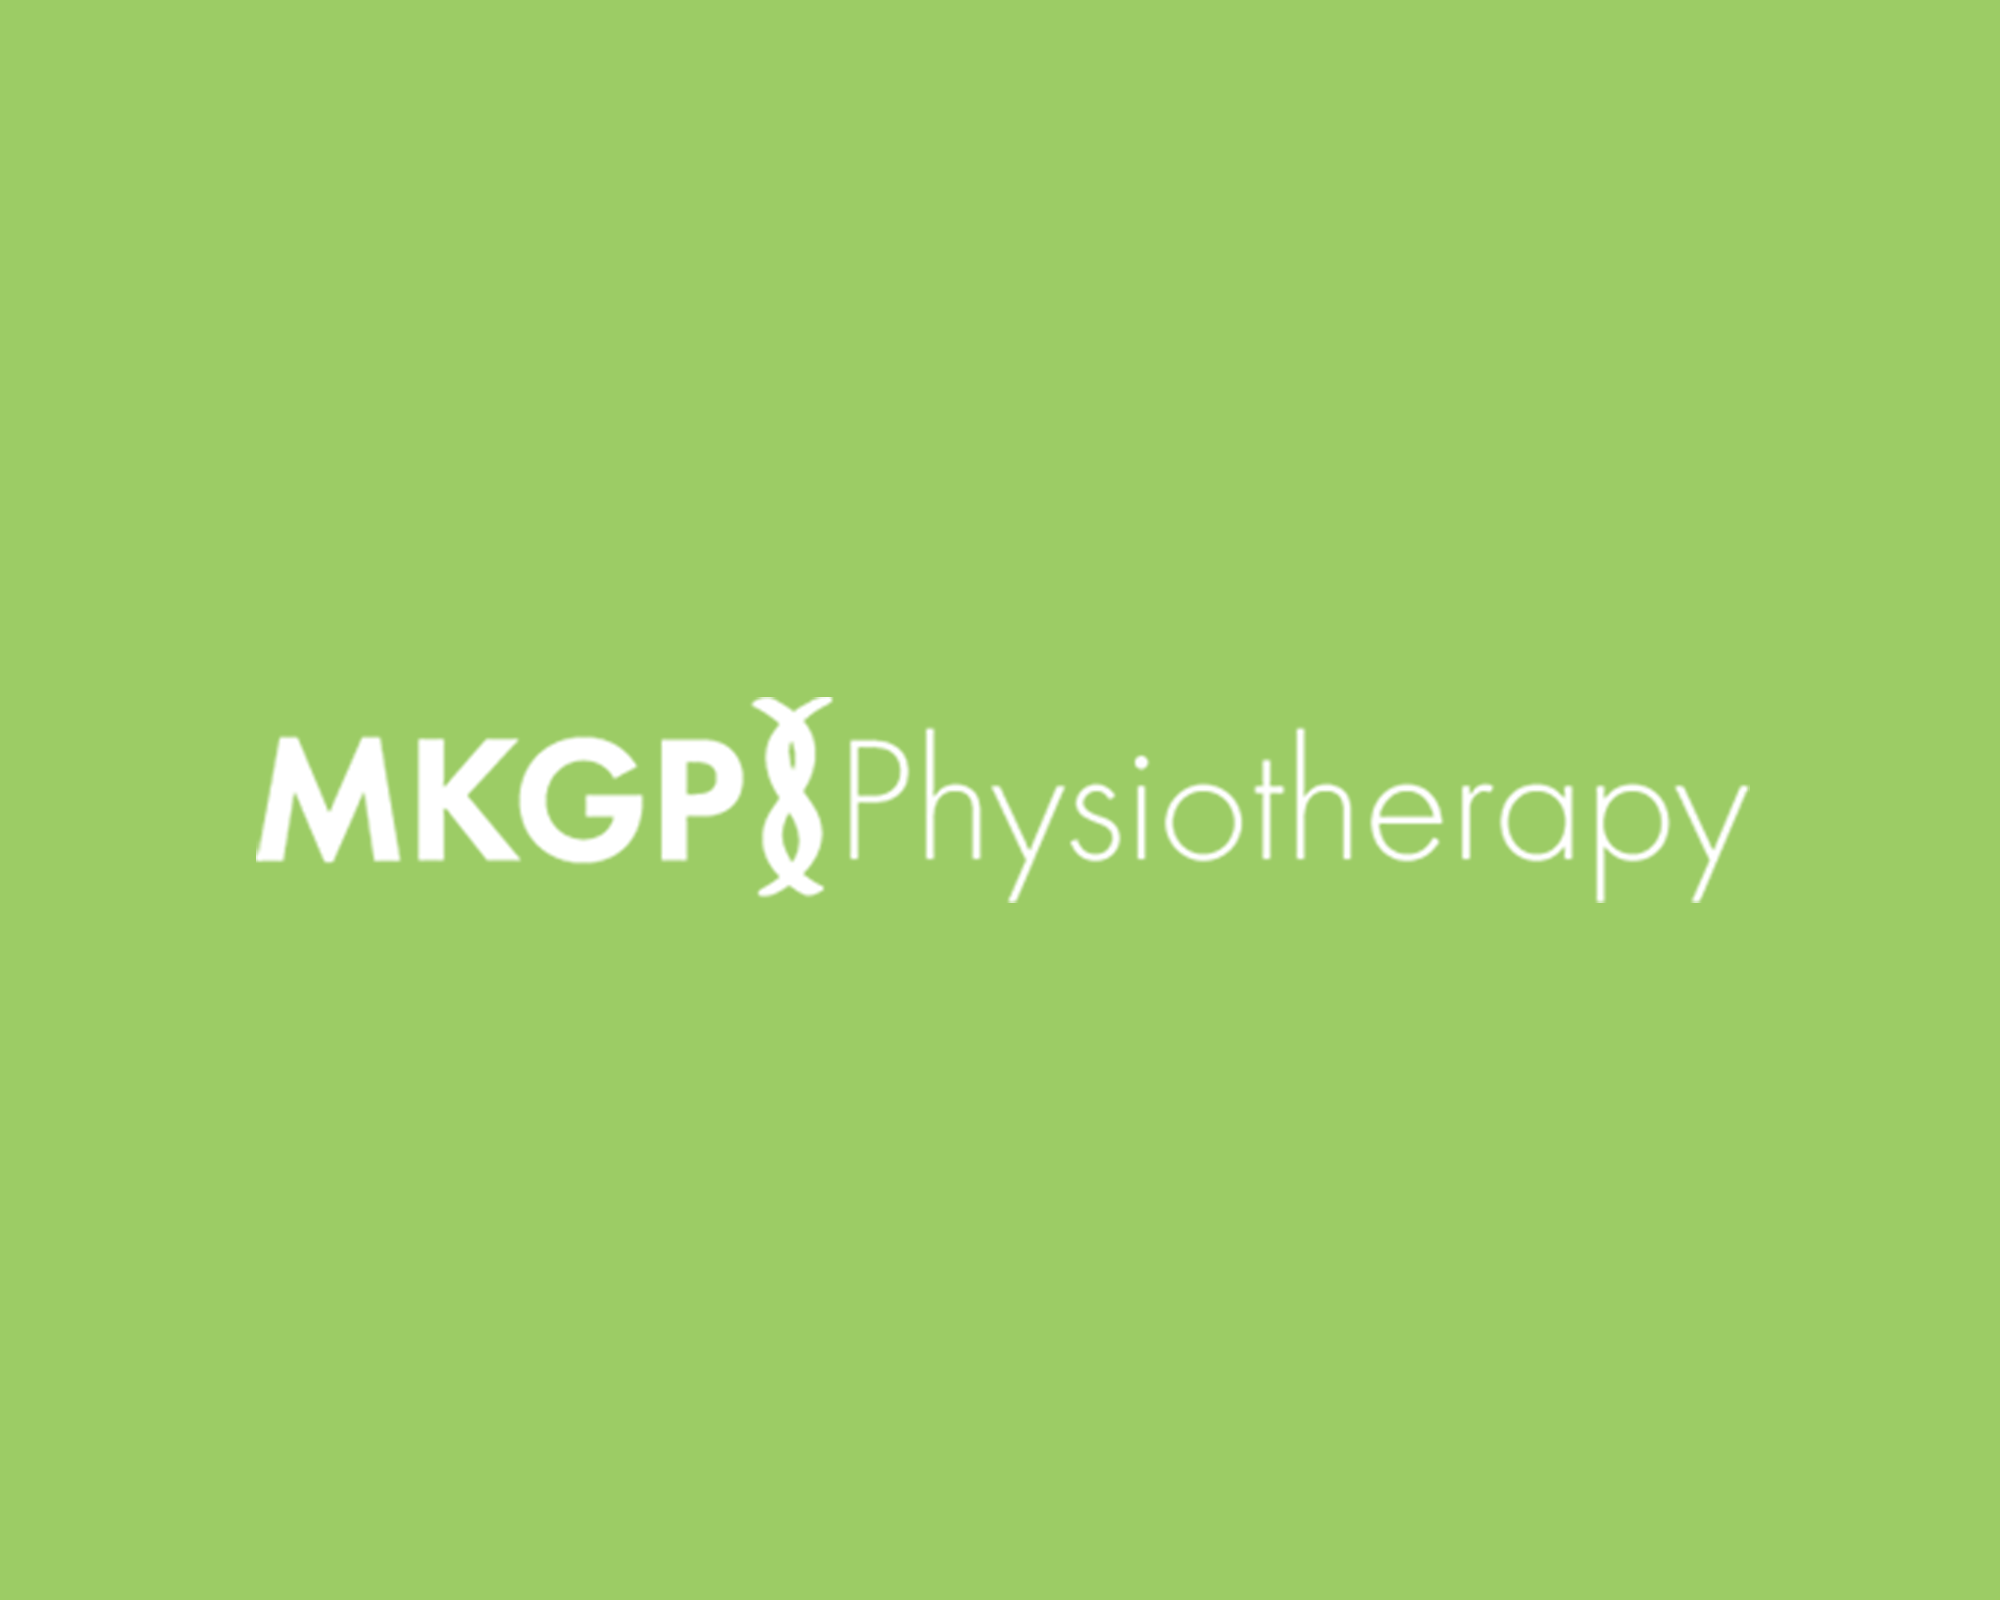 mkgp physiotherapy Logo